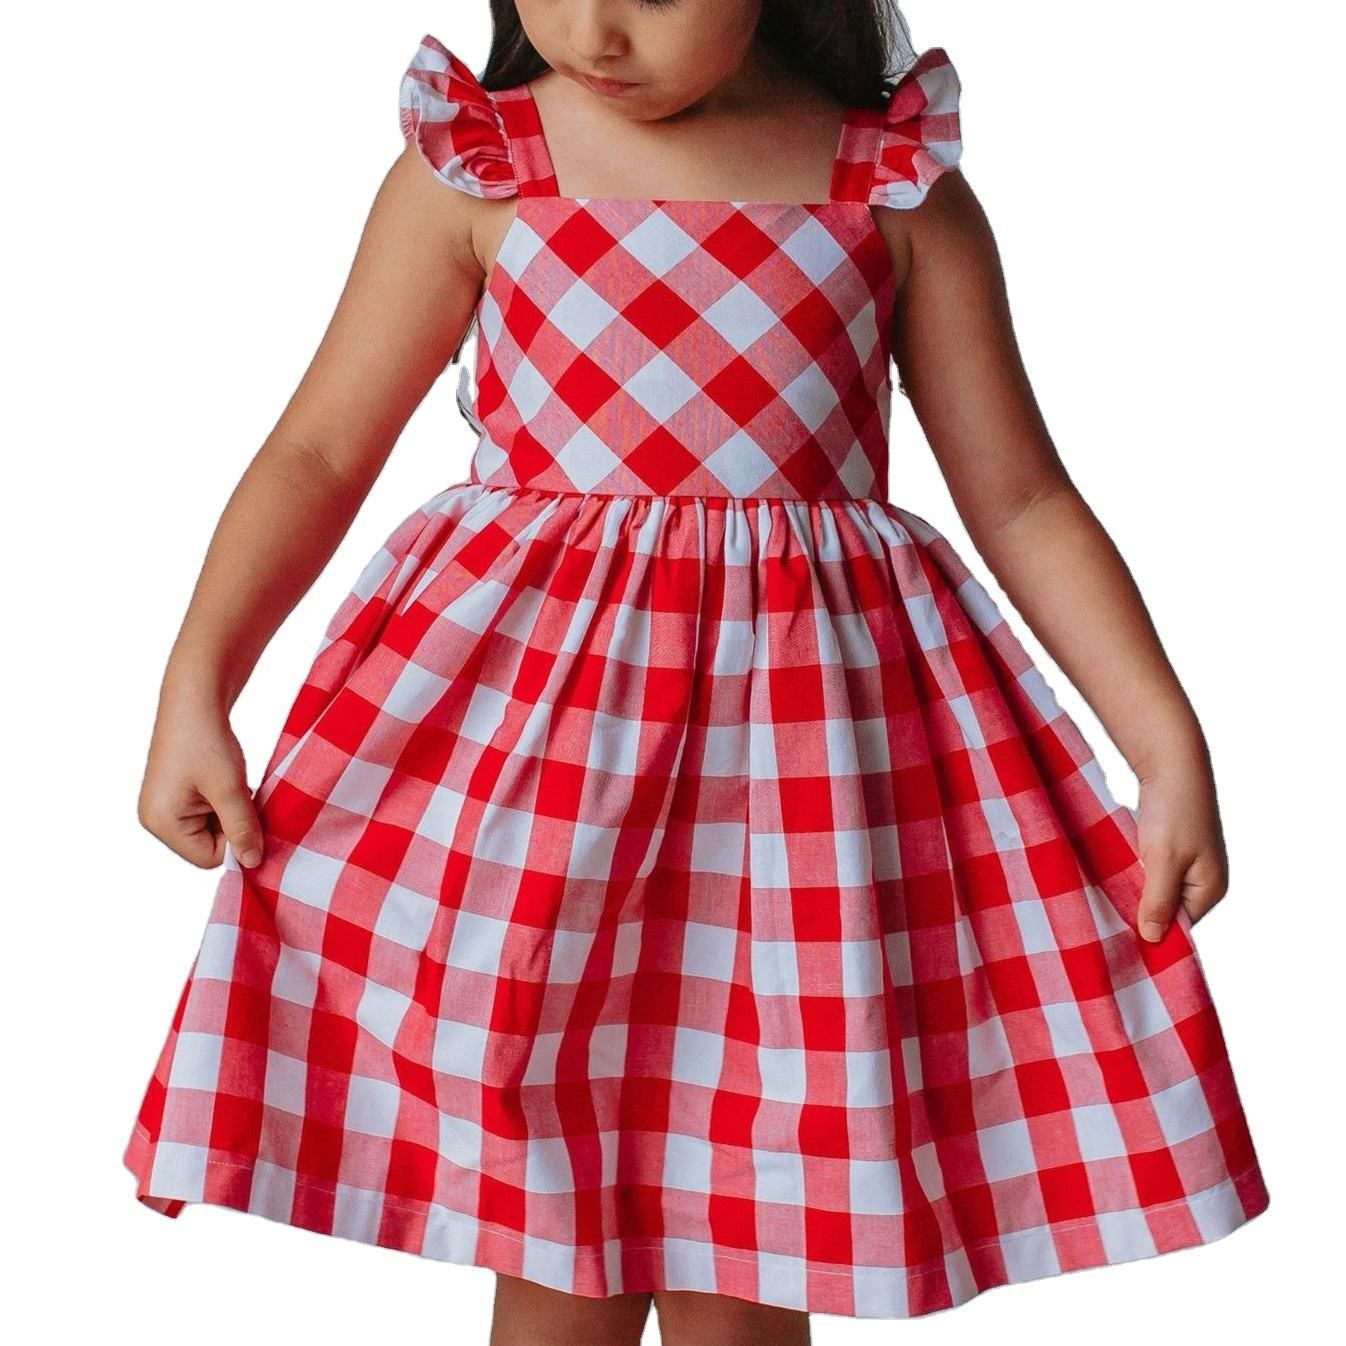 New Promotion High Quality Fast Shipping Cotton Event Girl Dresses 2021 Manufacturer from China